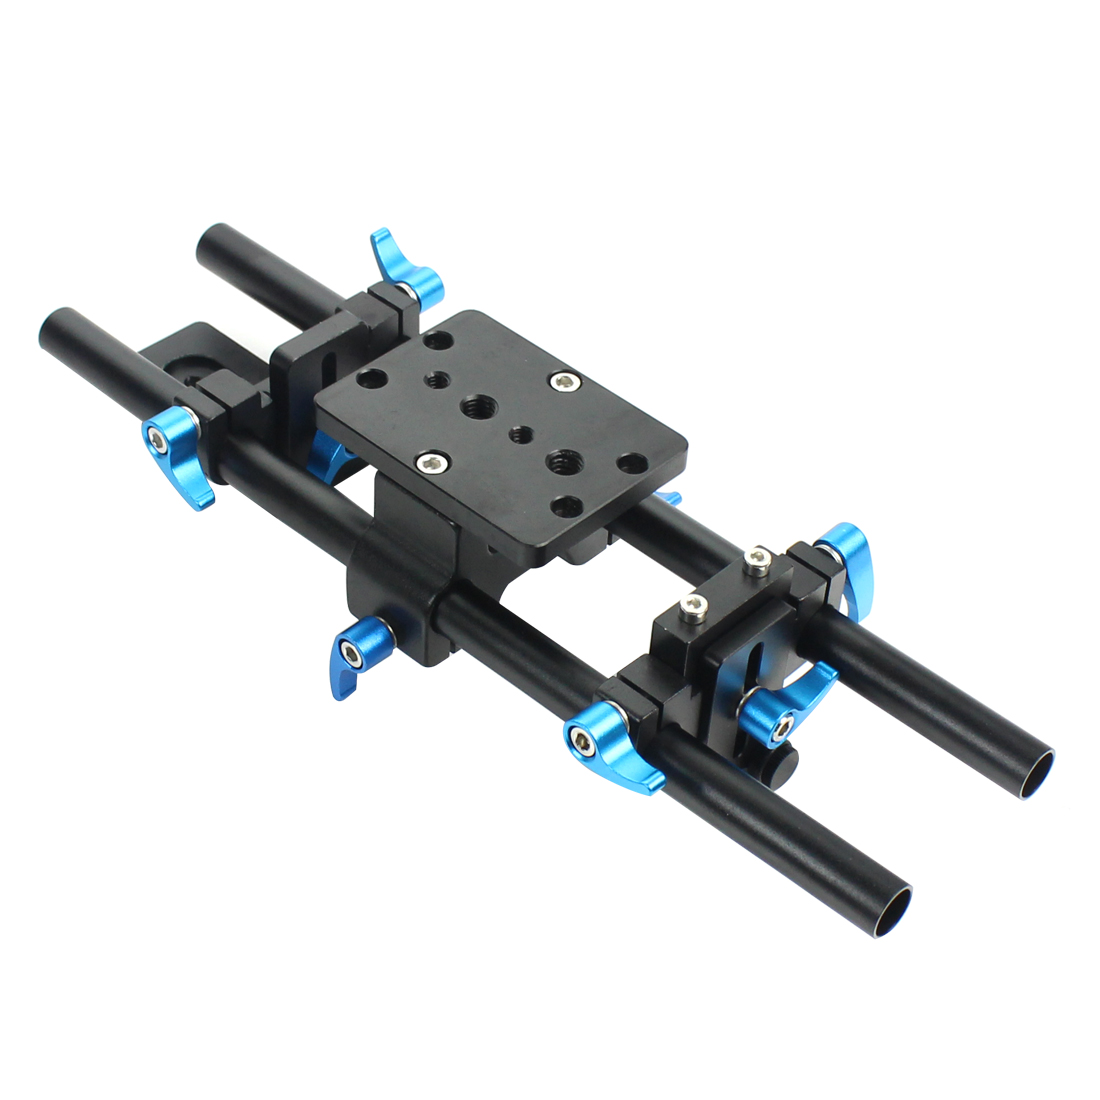 15mm Rail Rod Support System Track Rail Slider Baseplate with 1 4 Screw Quick Release Plate